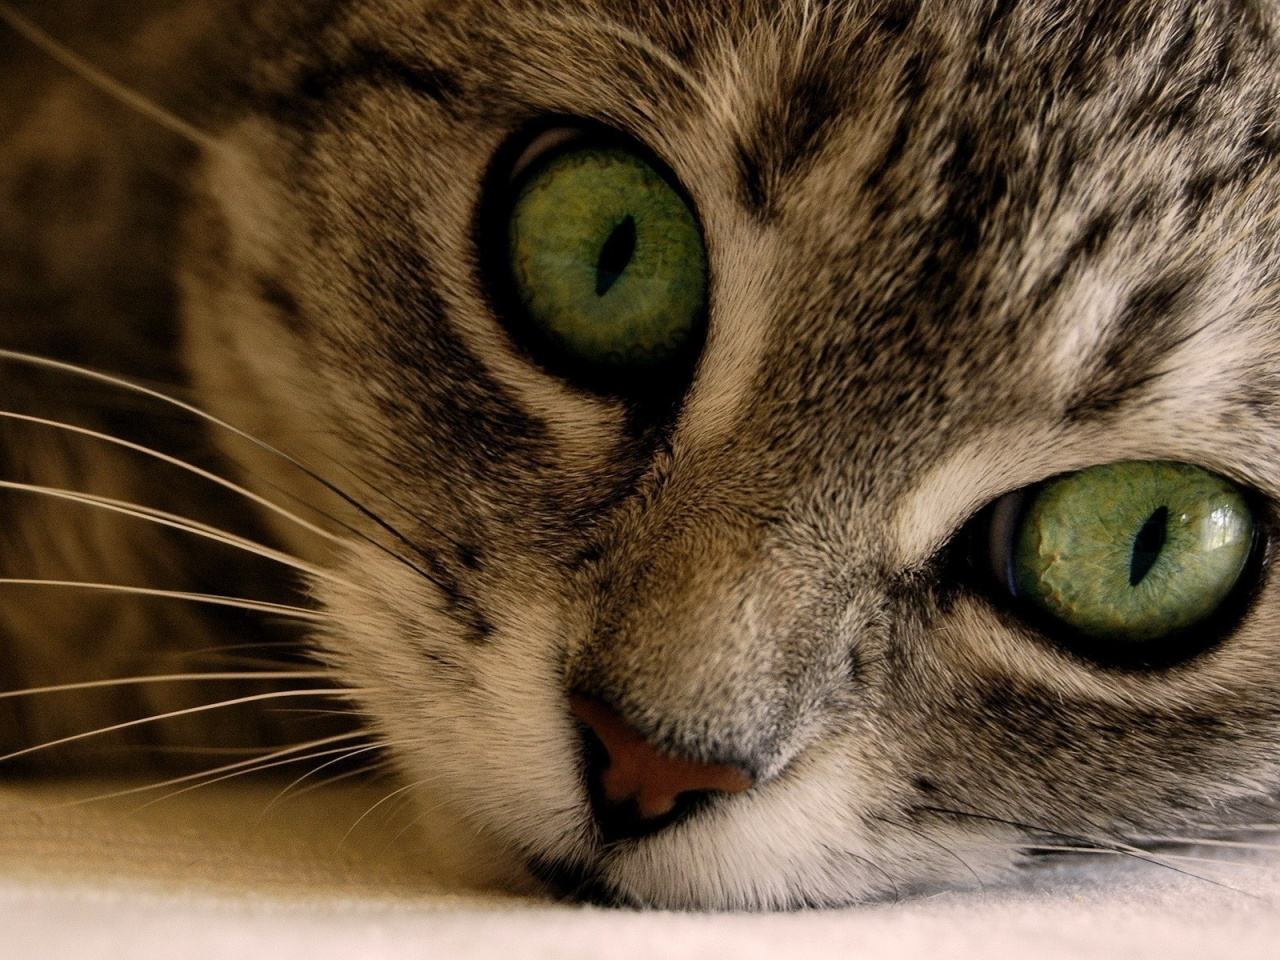 Green Eye Manx Cat for 1280 x 960 resolution